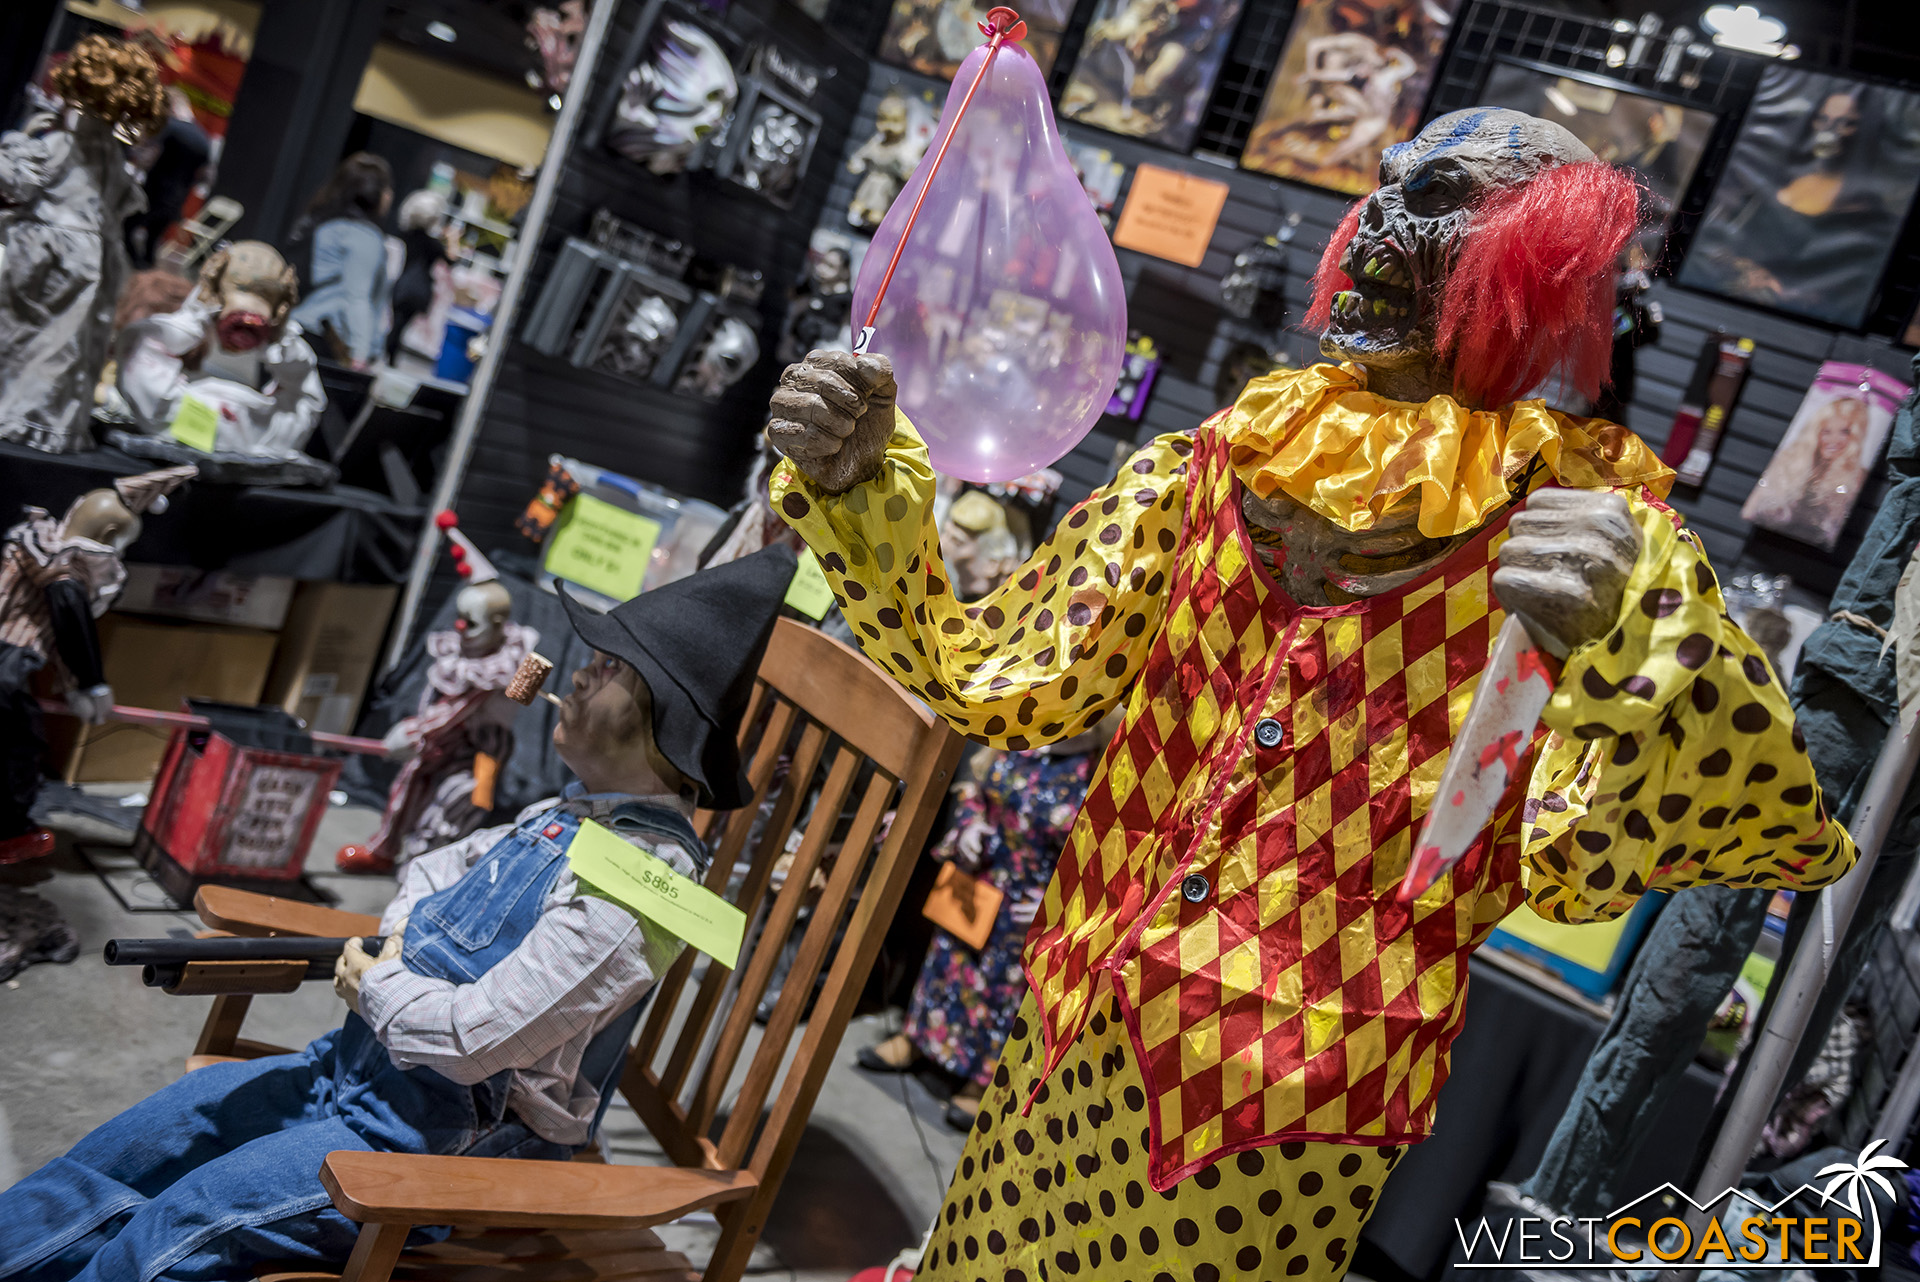 Looking for gory props? Midsummer Scream had plenty of them.